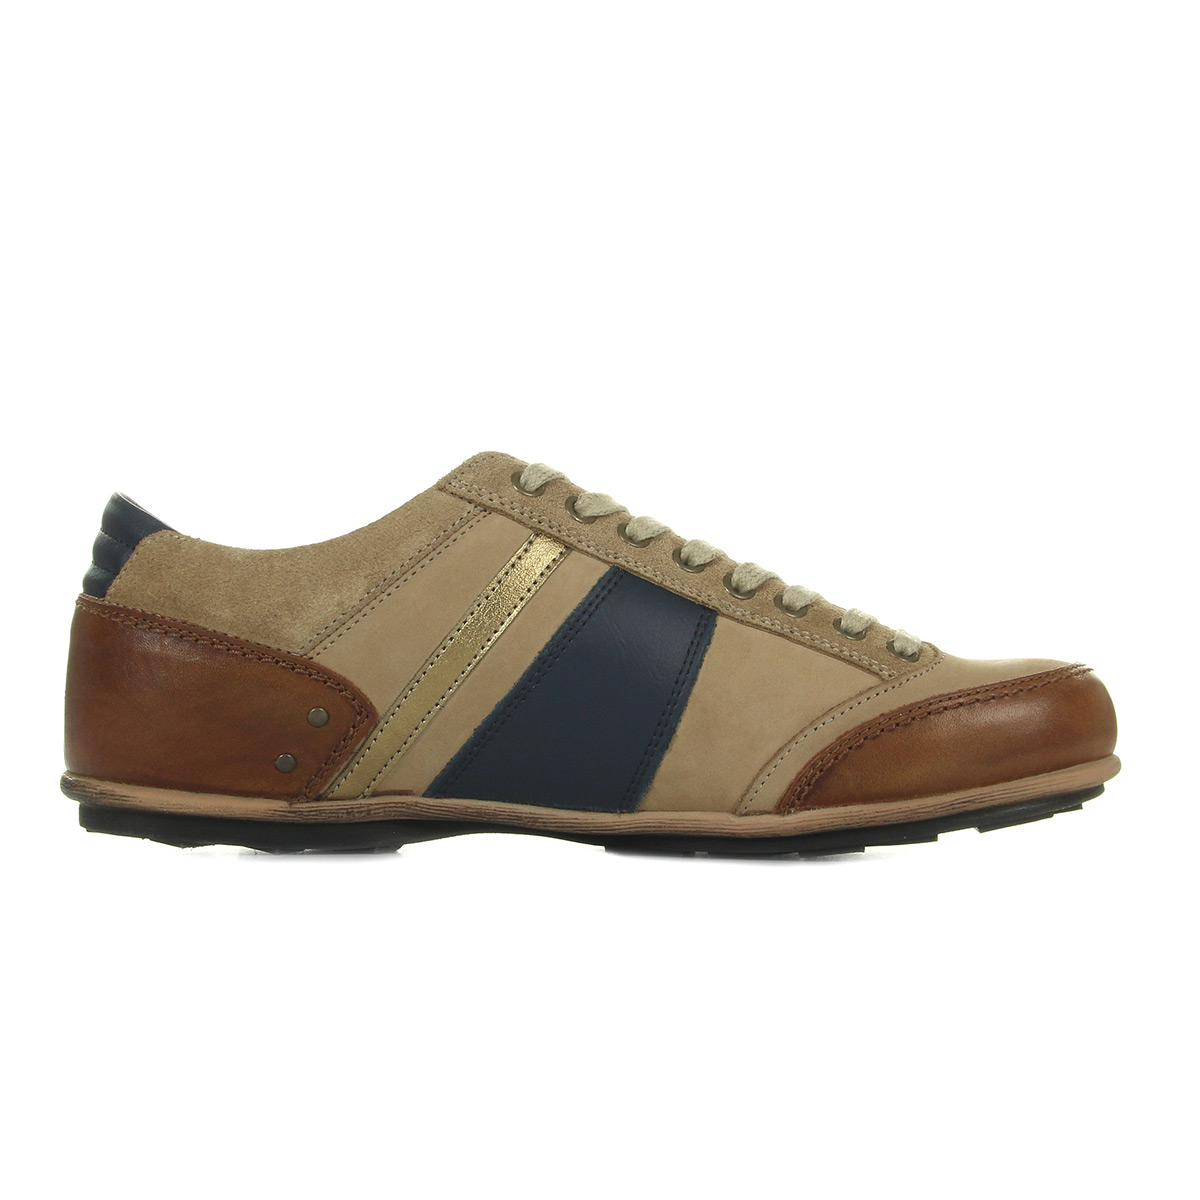 1c4d6be4b90a Chaussures Baskets Le Coq Sportif homme Turin Nubuck